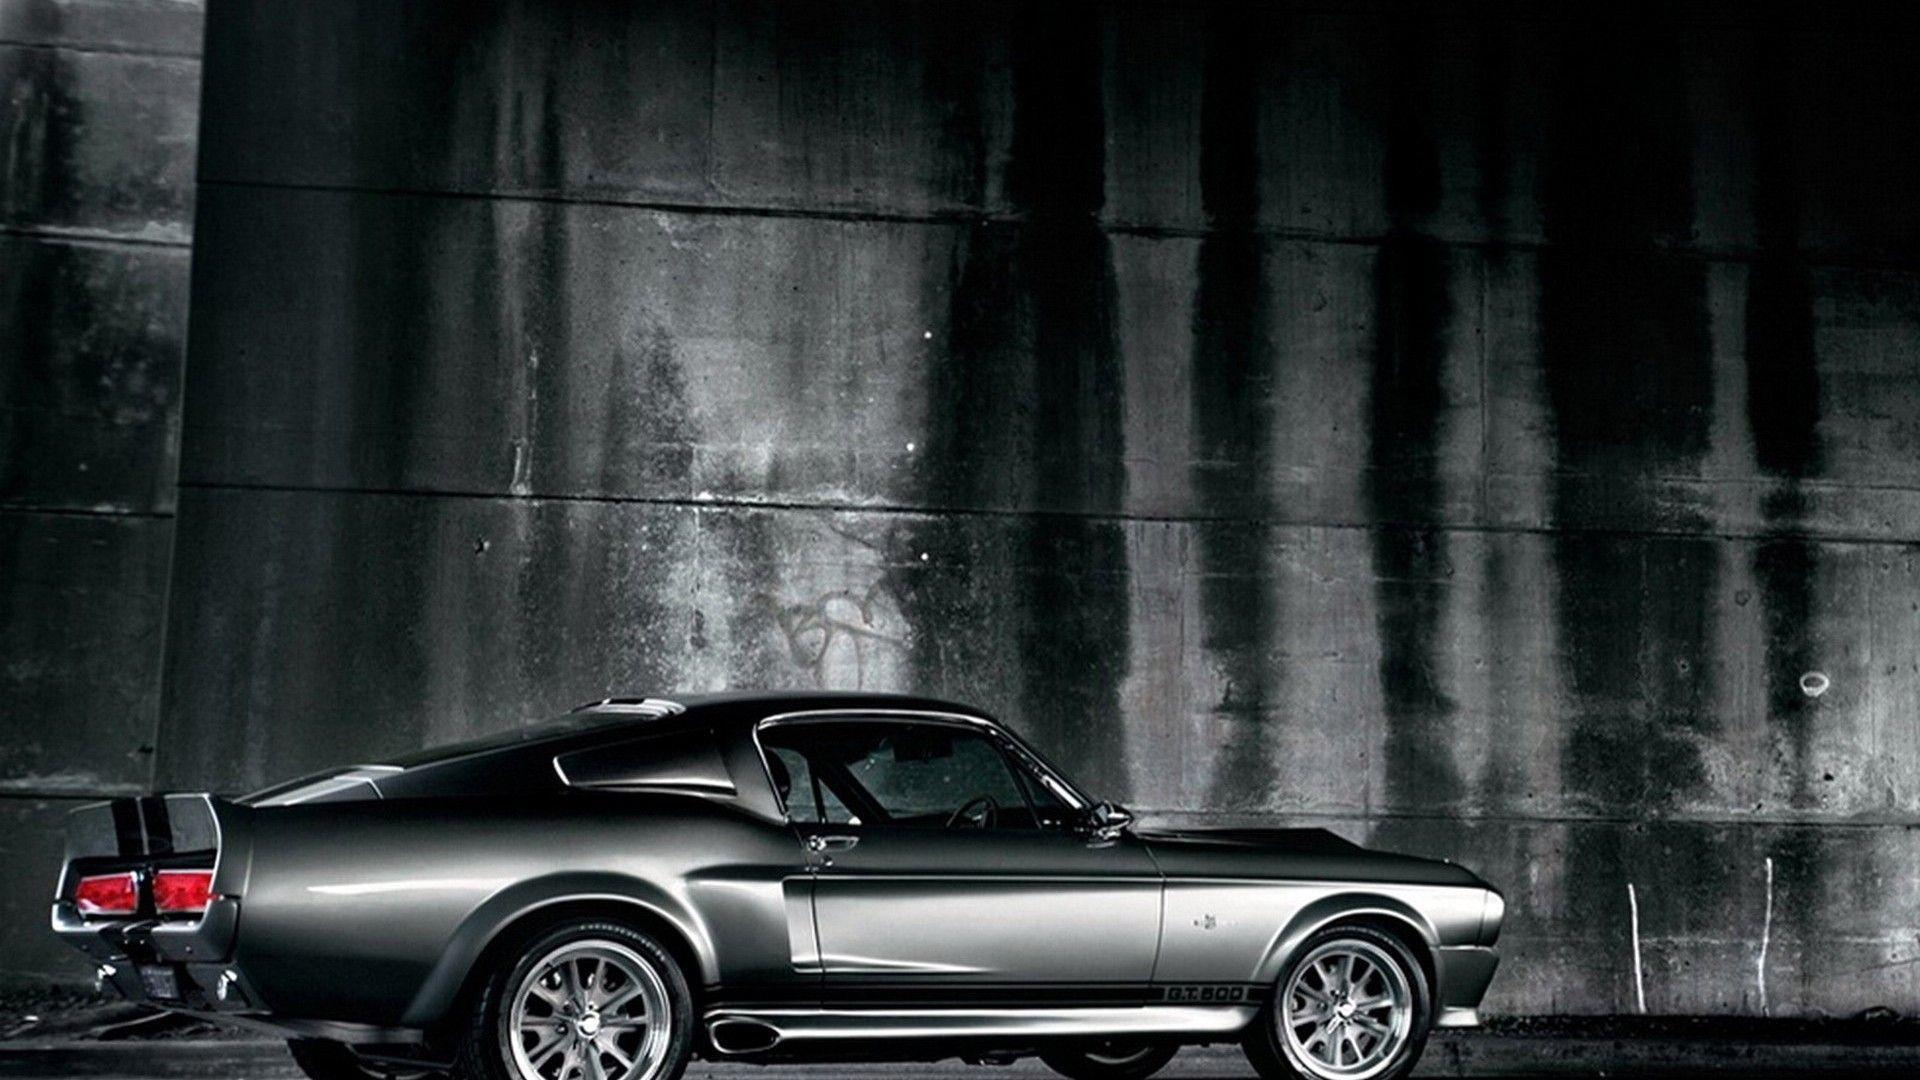 1967 Shelby Gt500 Wallpapers Wallpaper Cave